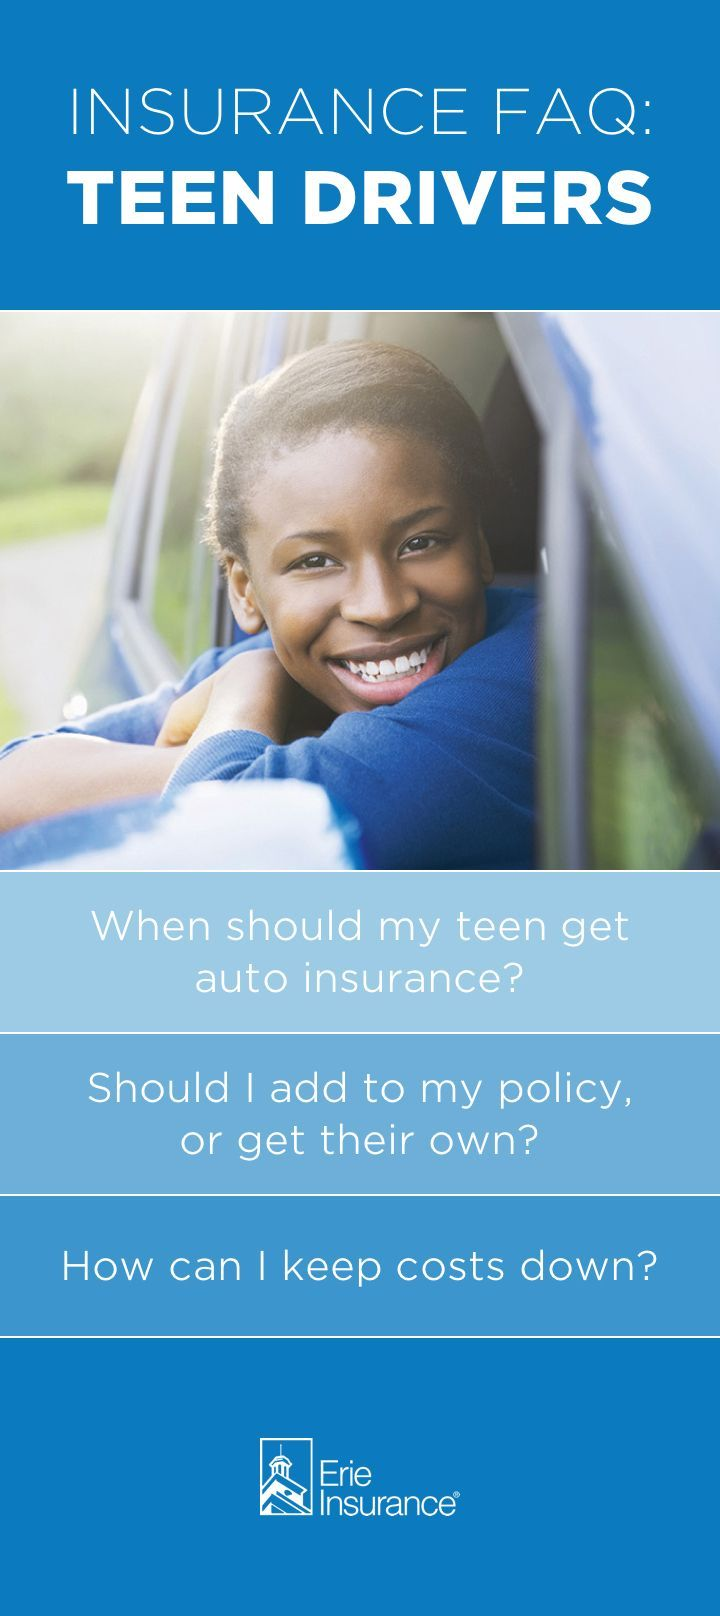 If you've got a teen driver at home, first things first: relax. With a little knowledge, you can help your teen be smart and safe on the road. It all starts with having the right auto insurance coverage -- and that's where Erie Insurance can help. Read more about how we can be there for you and your teen driver. #safety #TeenDriving